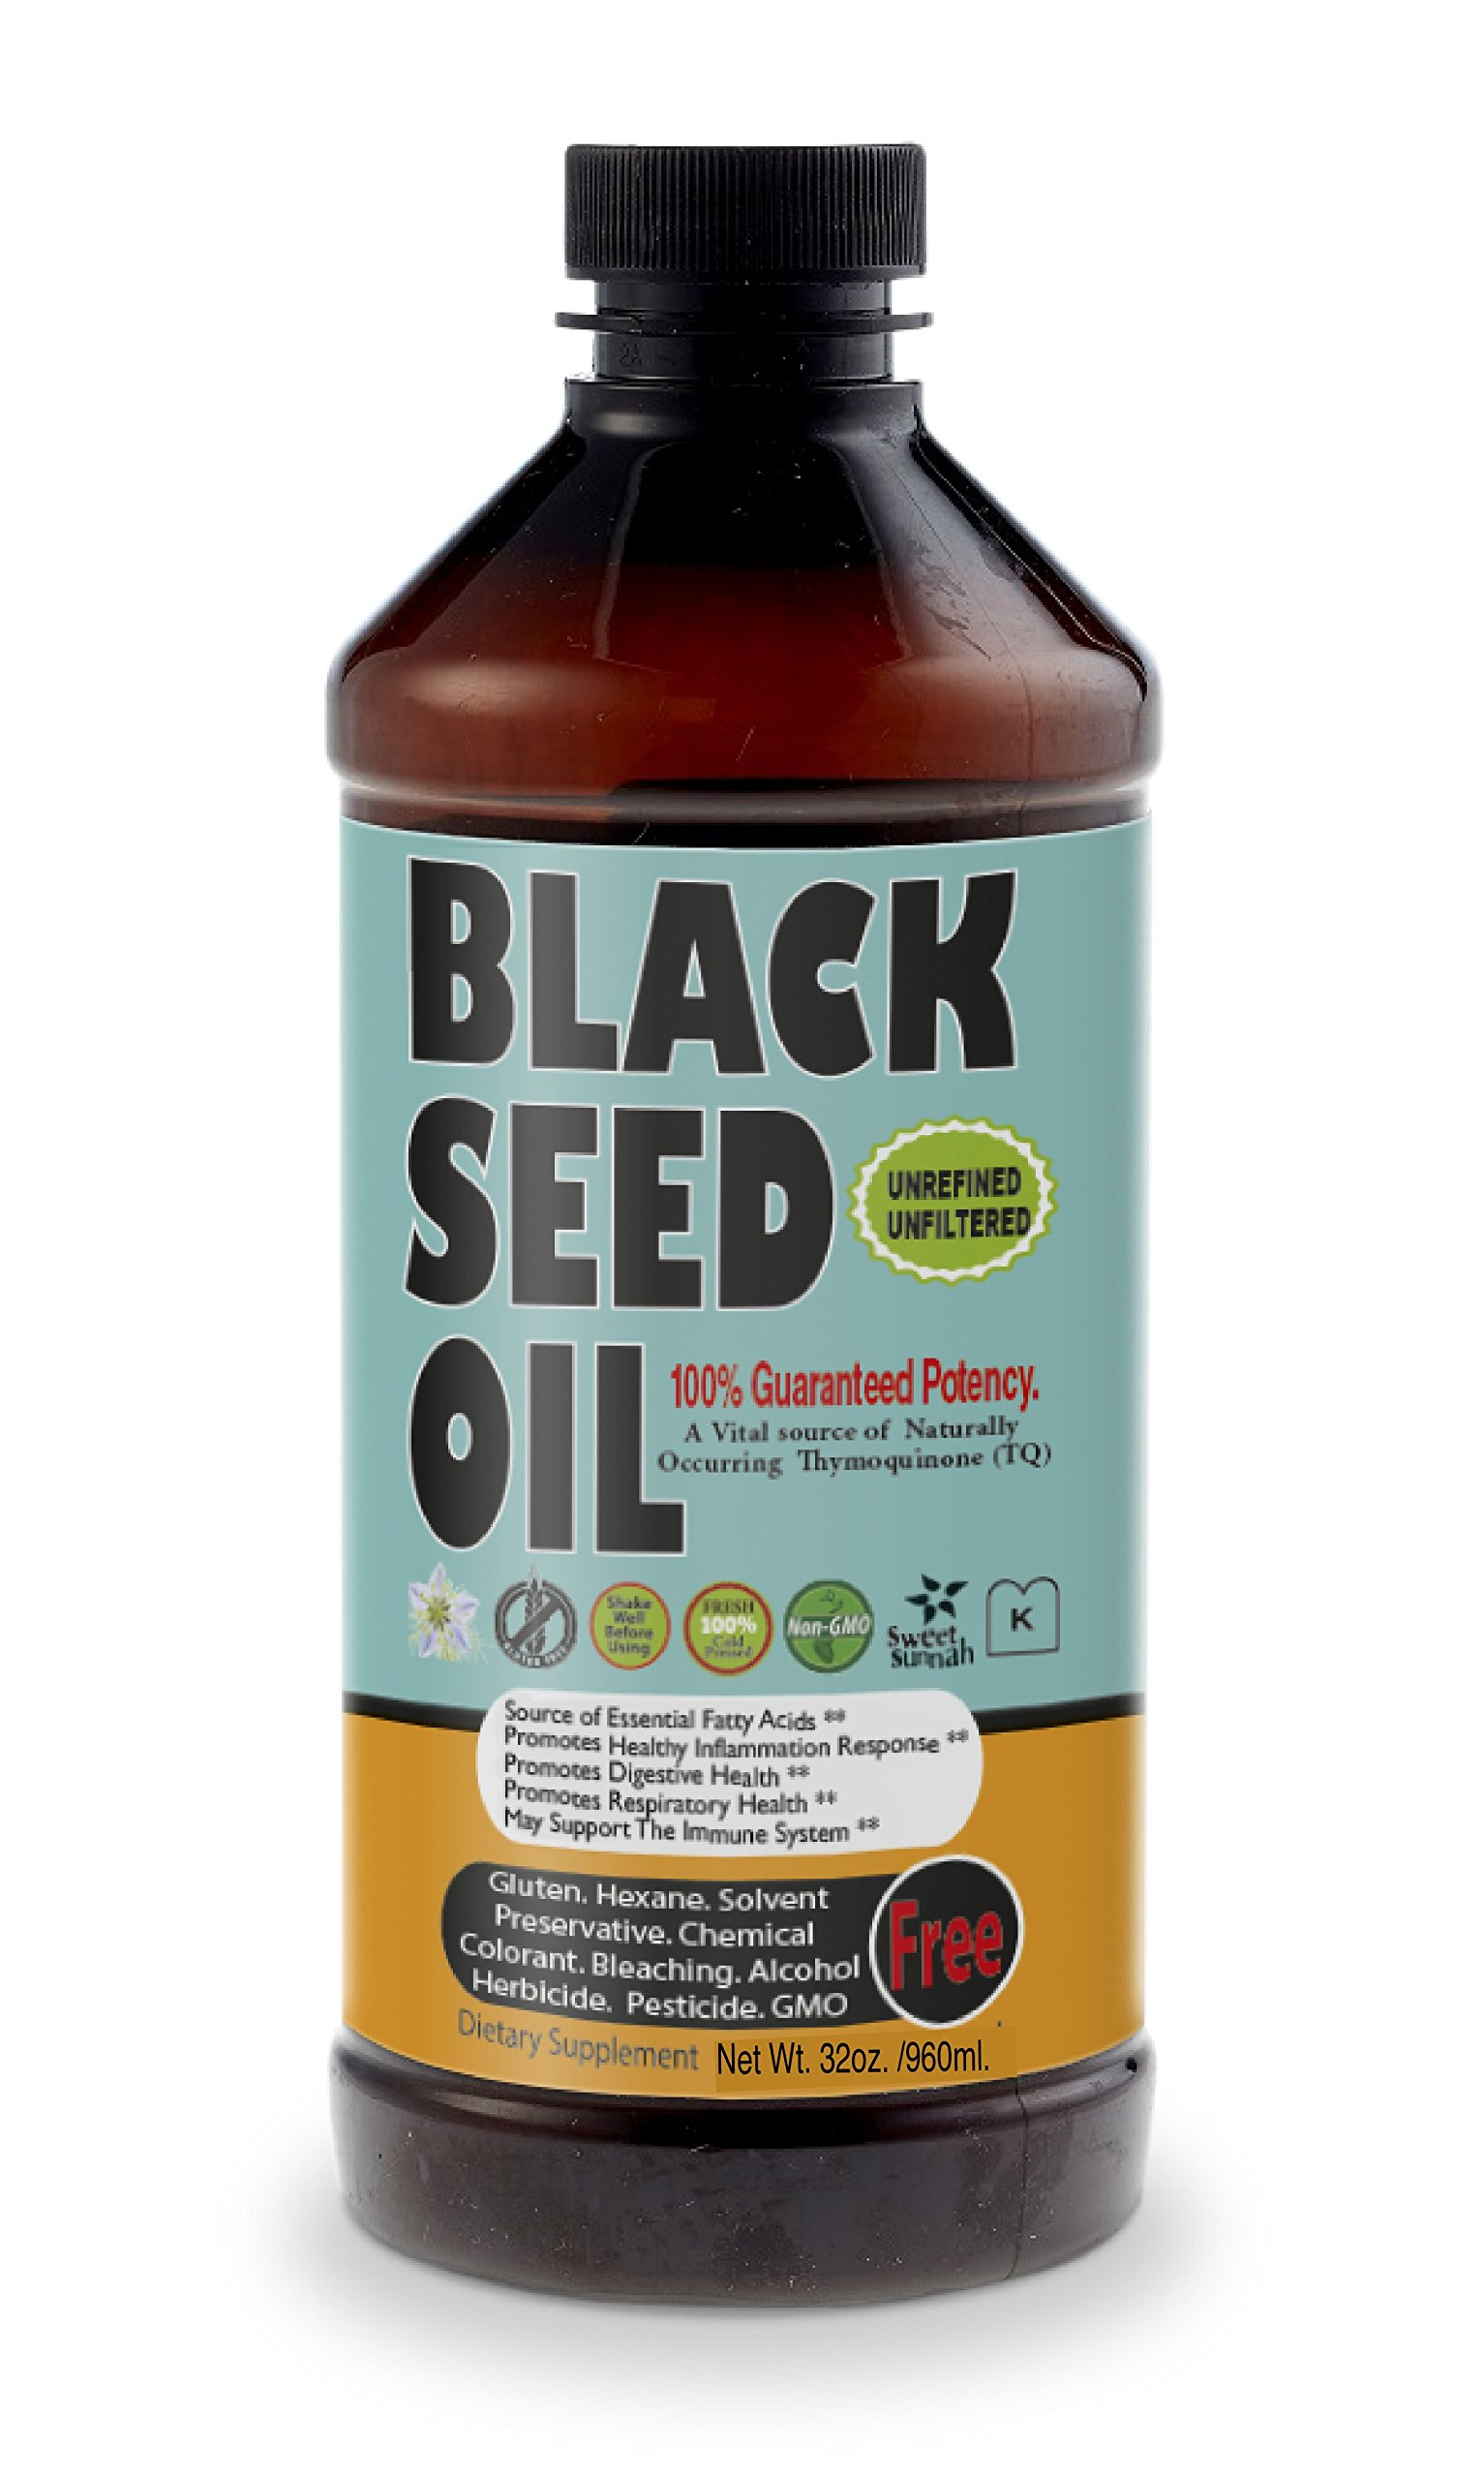 Sweet Sunnah Black Seed Oil Cold Pressed (First Pressing) 32 oz.-,Non GMO Unrefined & Unfiltered,No Preservatives & Artificial Color - Glass Bottle - Product of USA